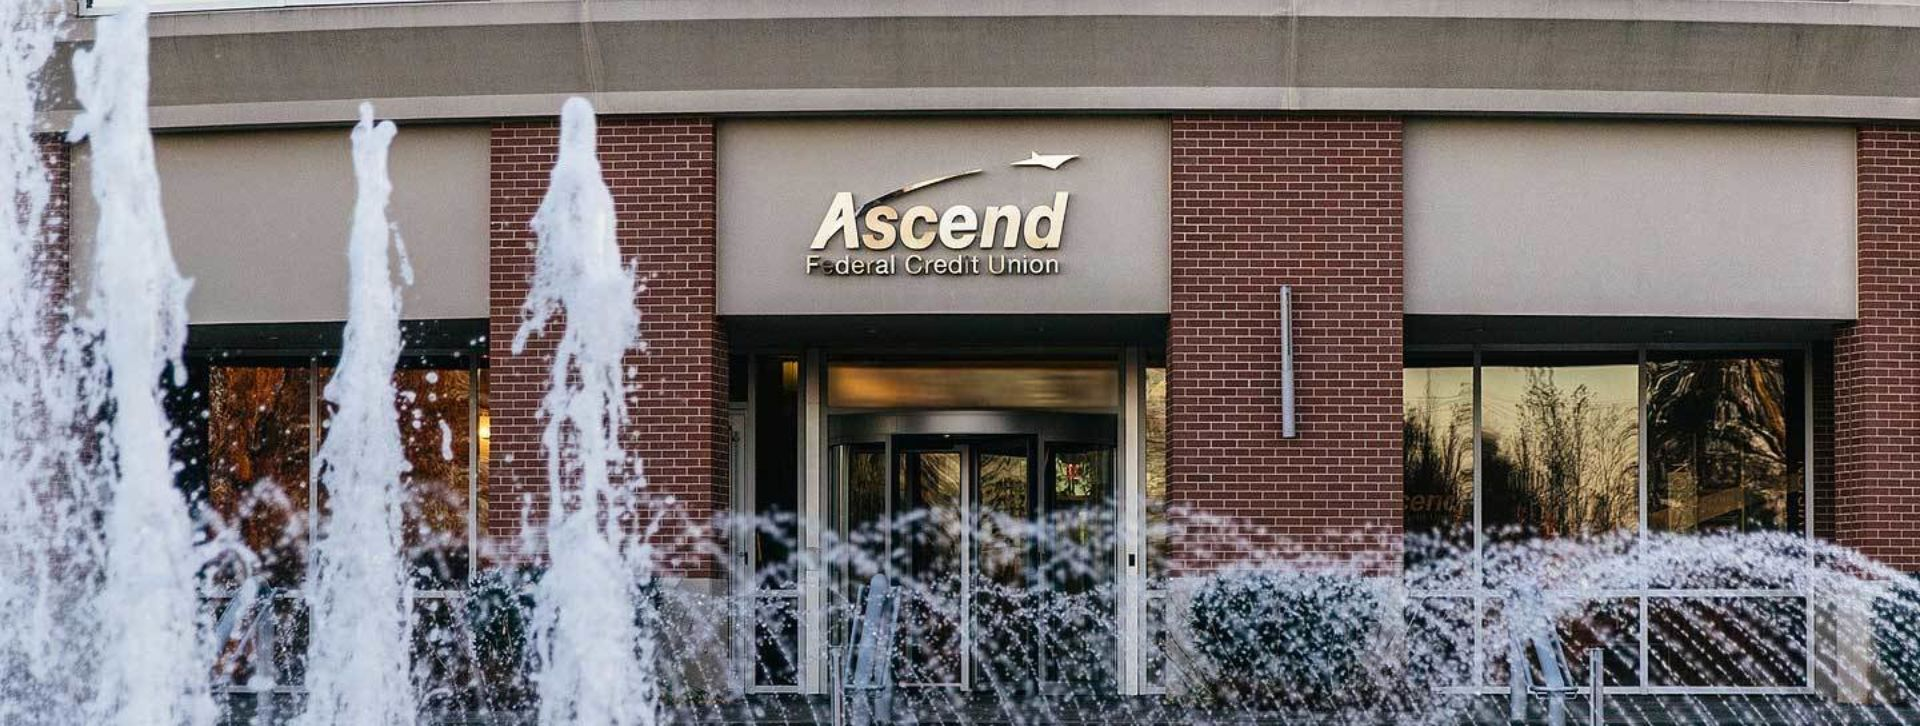 Ascend Federal Credit Union building